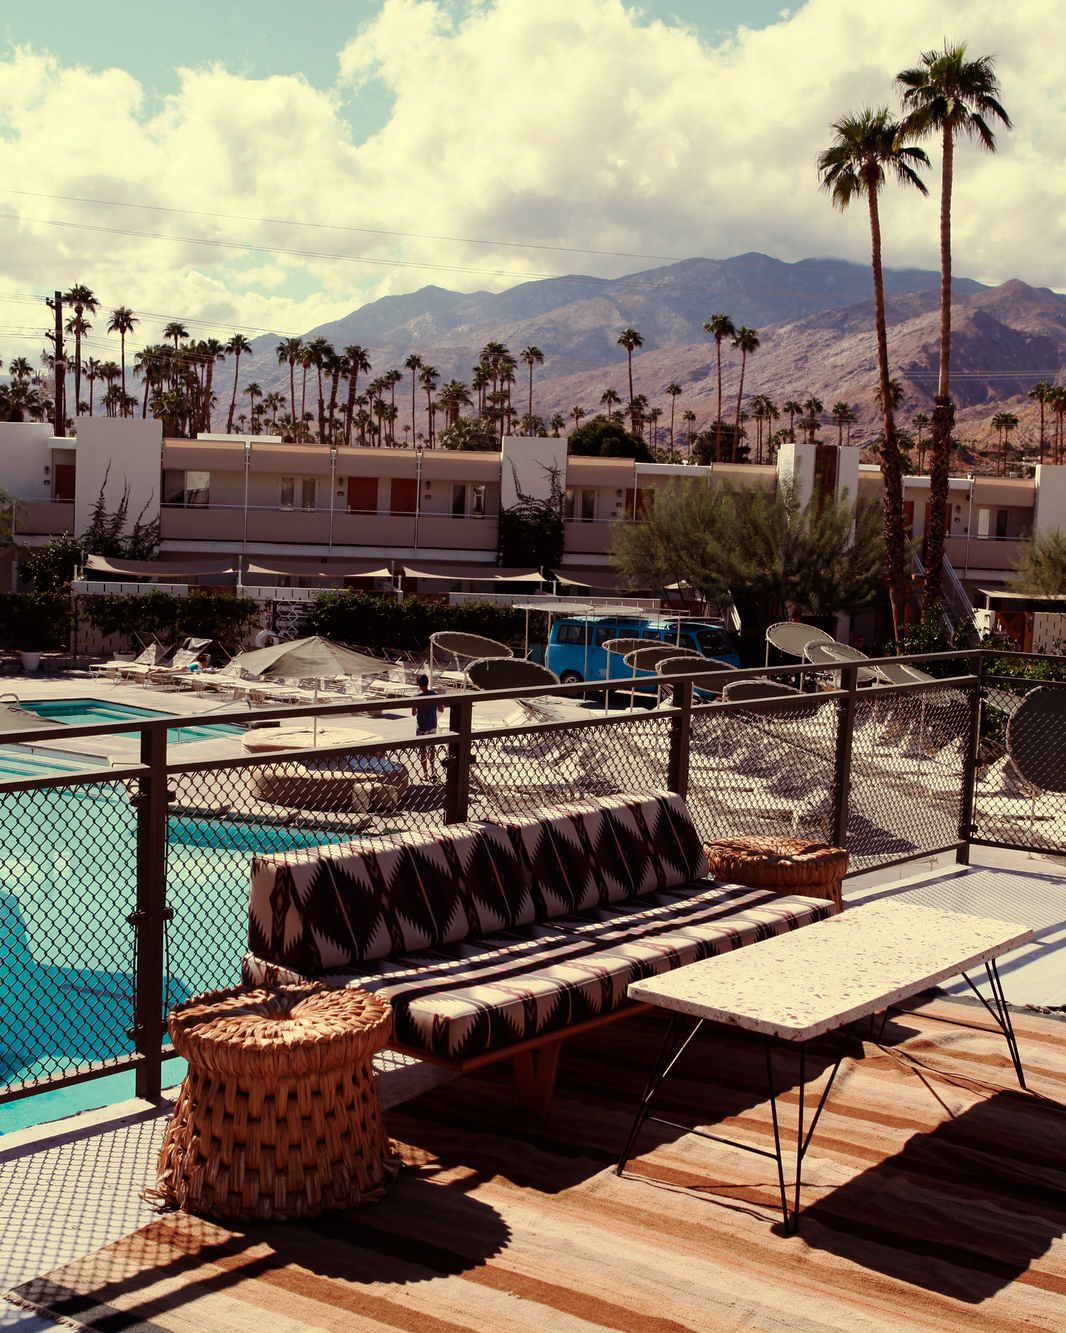 smith-ace-hotel-palm-springs-ca.jpg